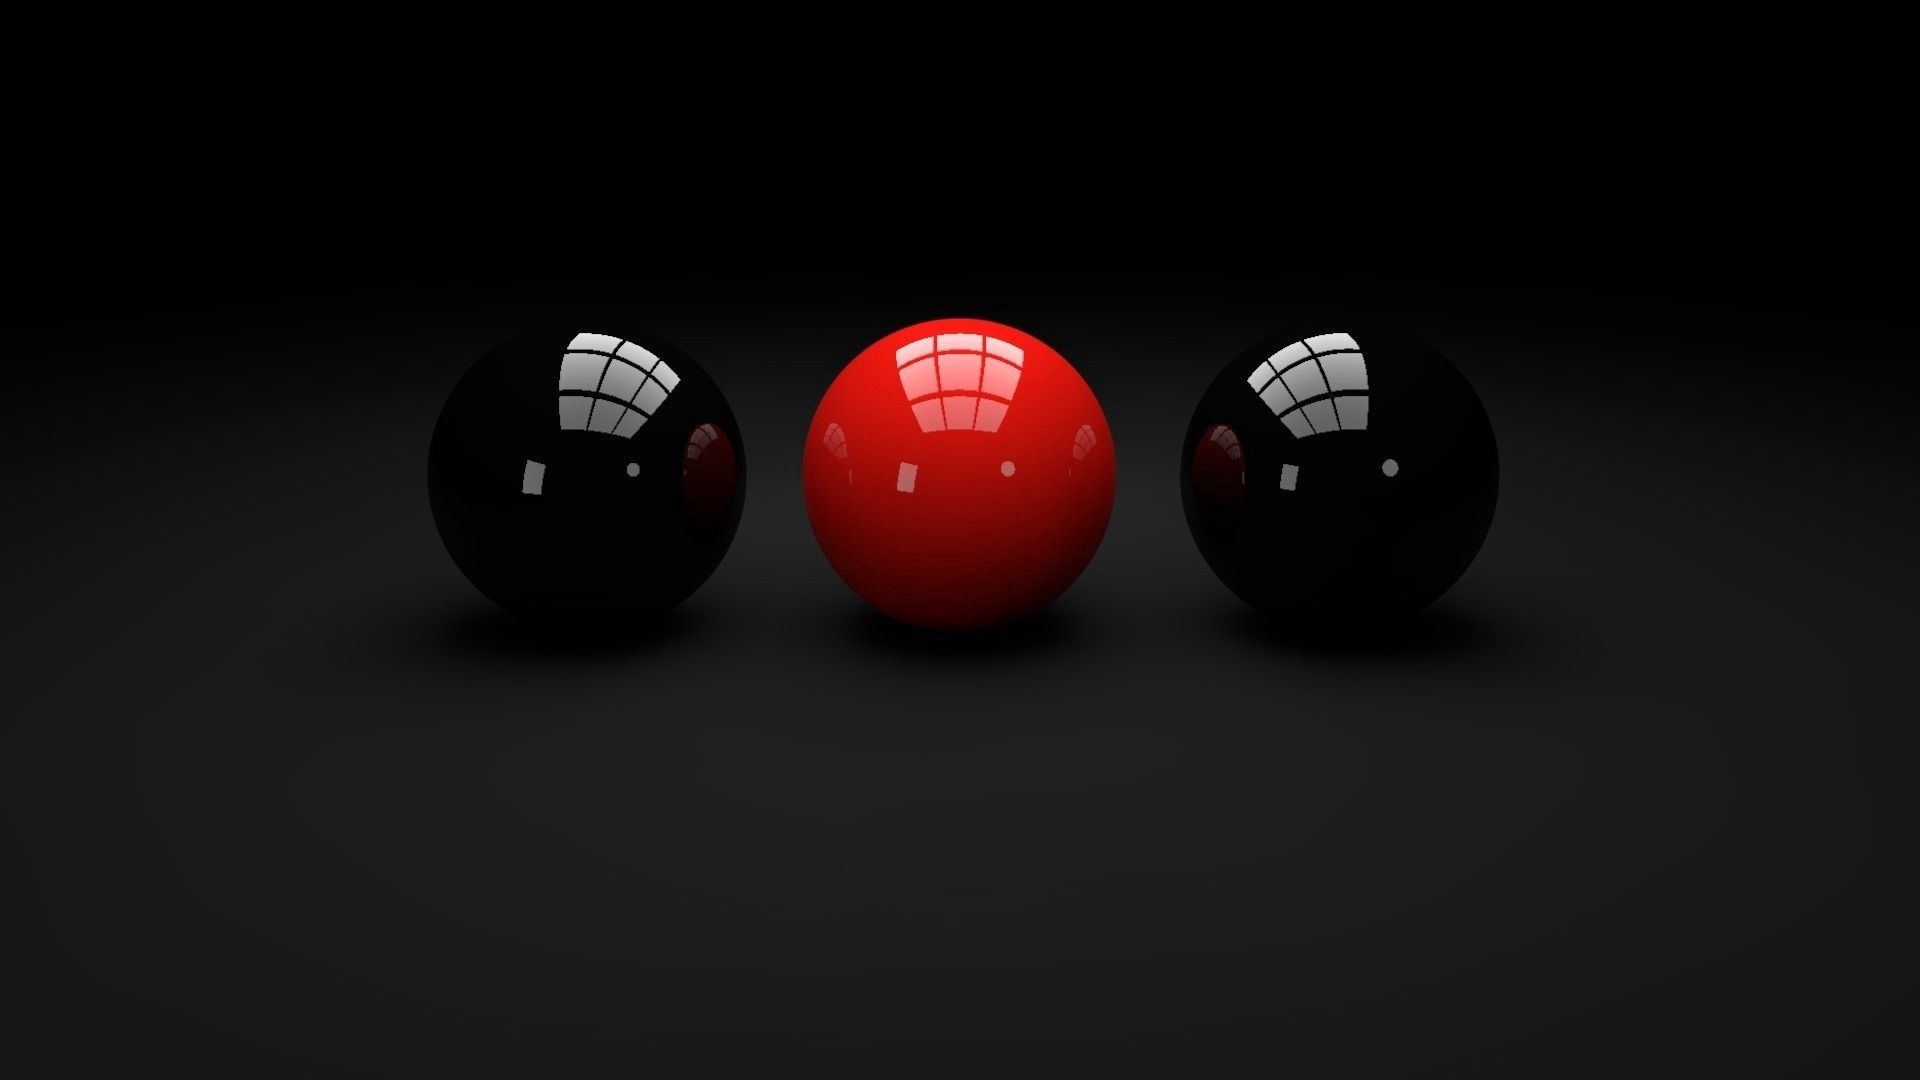 76218 download wallpaper Reflection, 3D, Glass, Balls screensavers and pictures for free